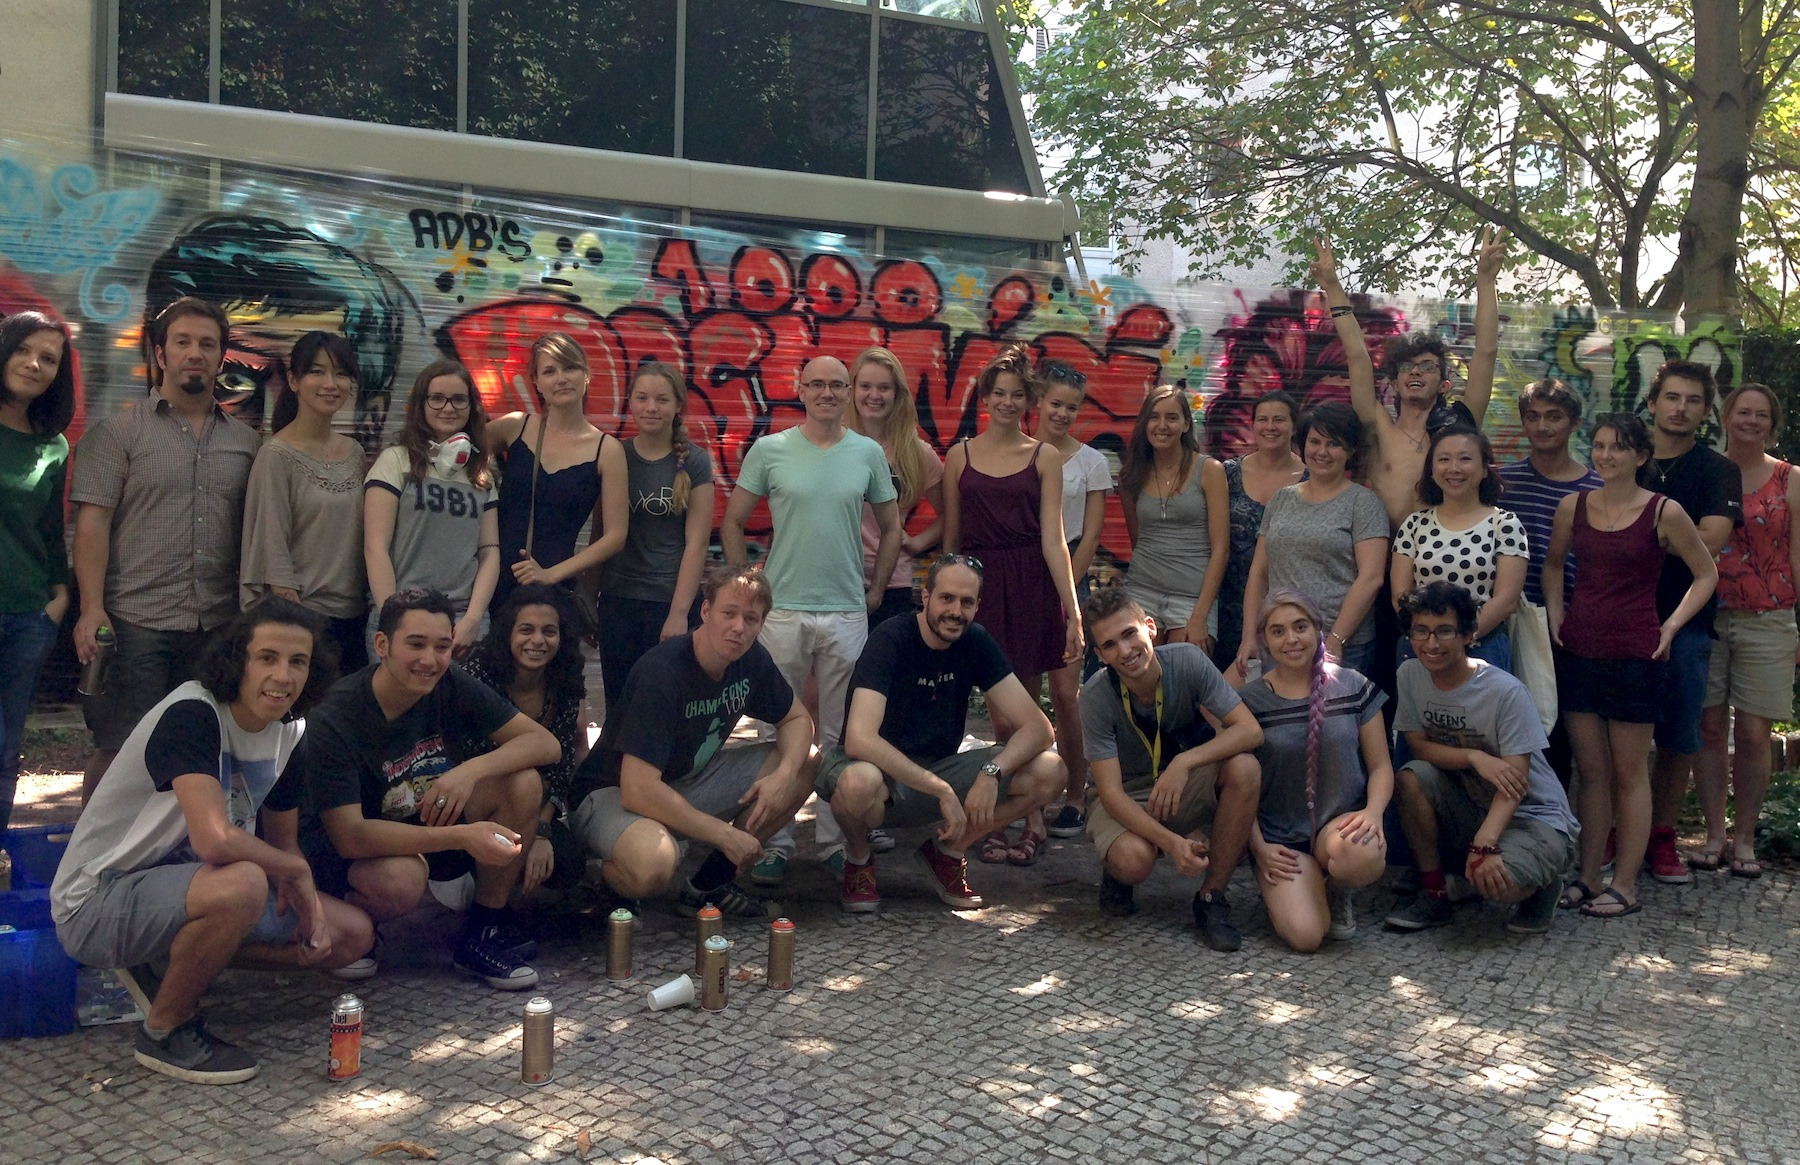 Here are some of the students, along with illustrator  Rafa Alvarez  (middle-front with black shirt) and  Felix Gephardt  (directly to the left of Rafa), a very talented Graffiti artist and illustrator.